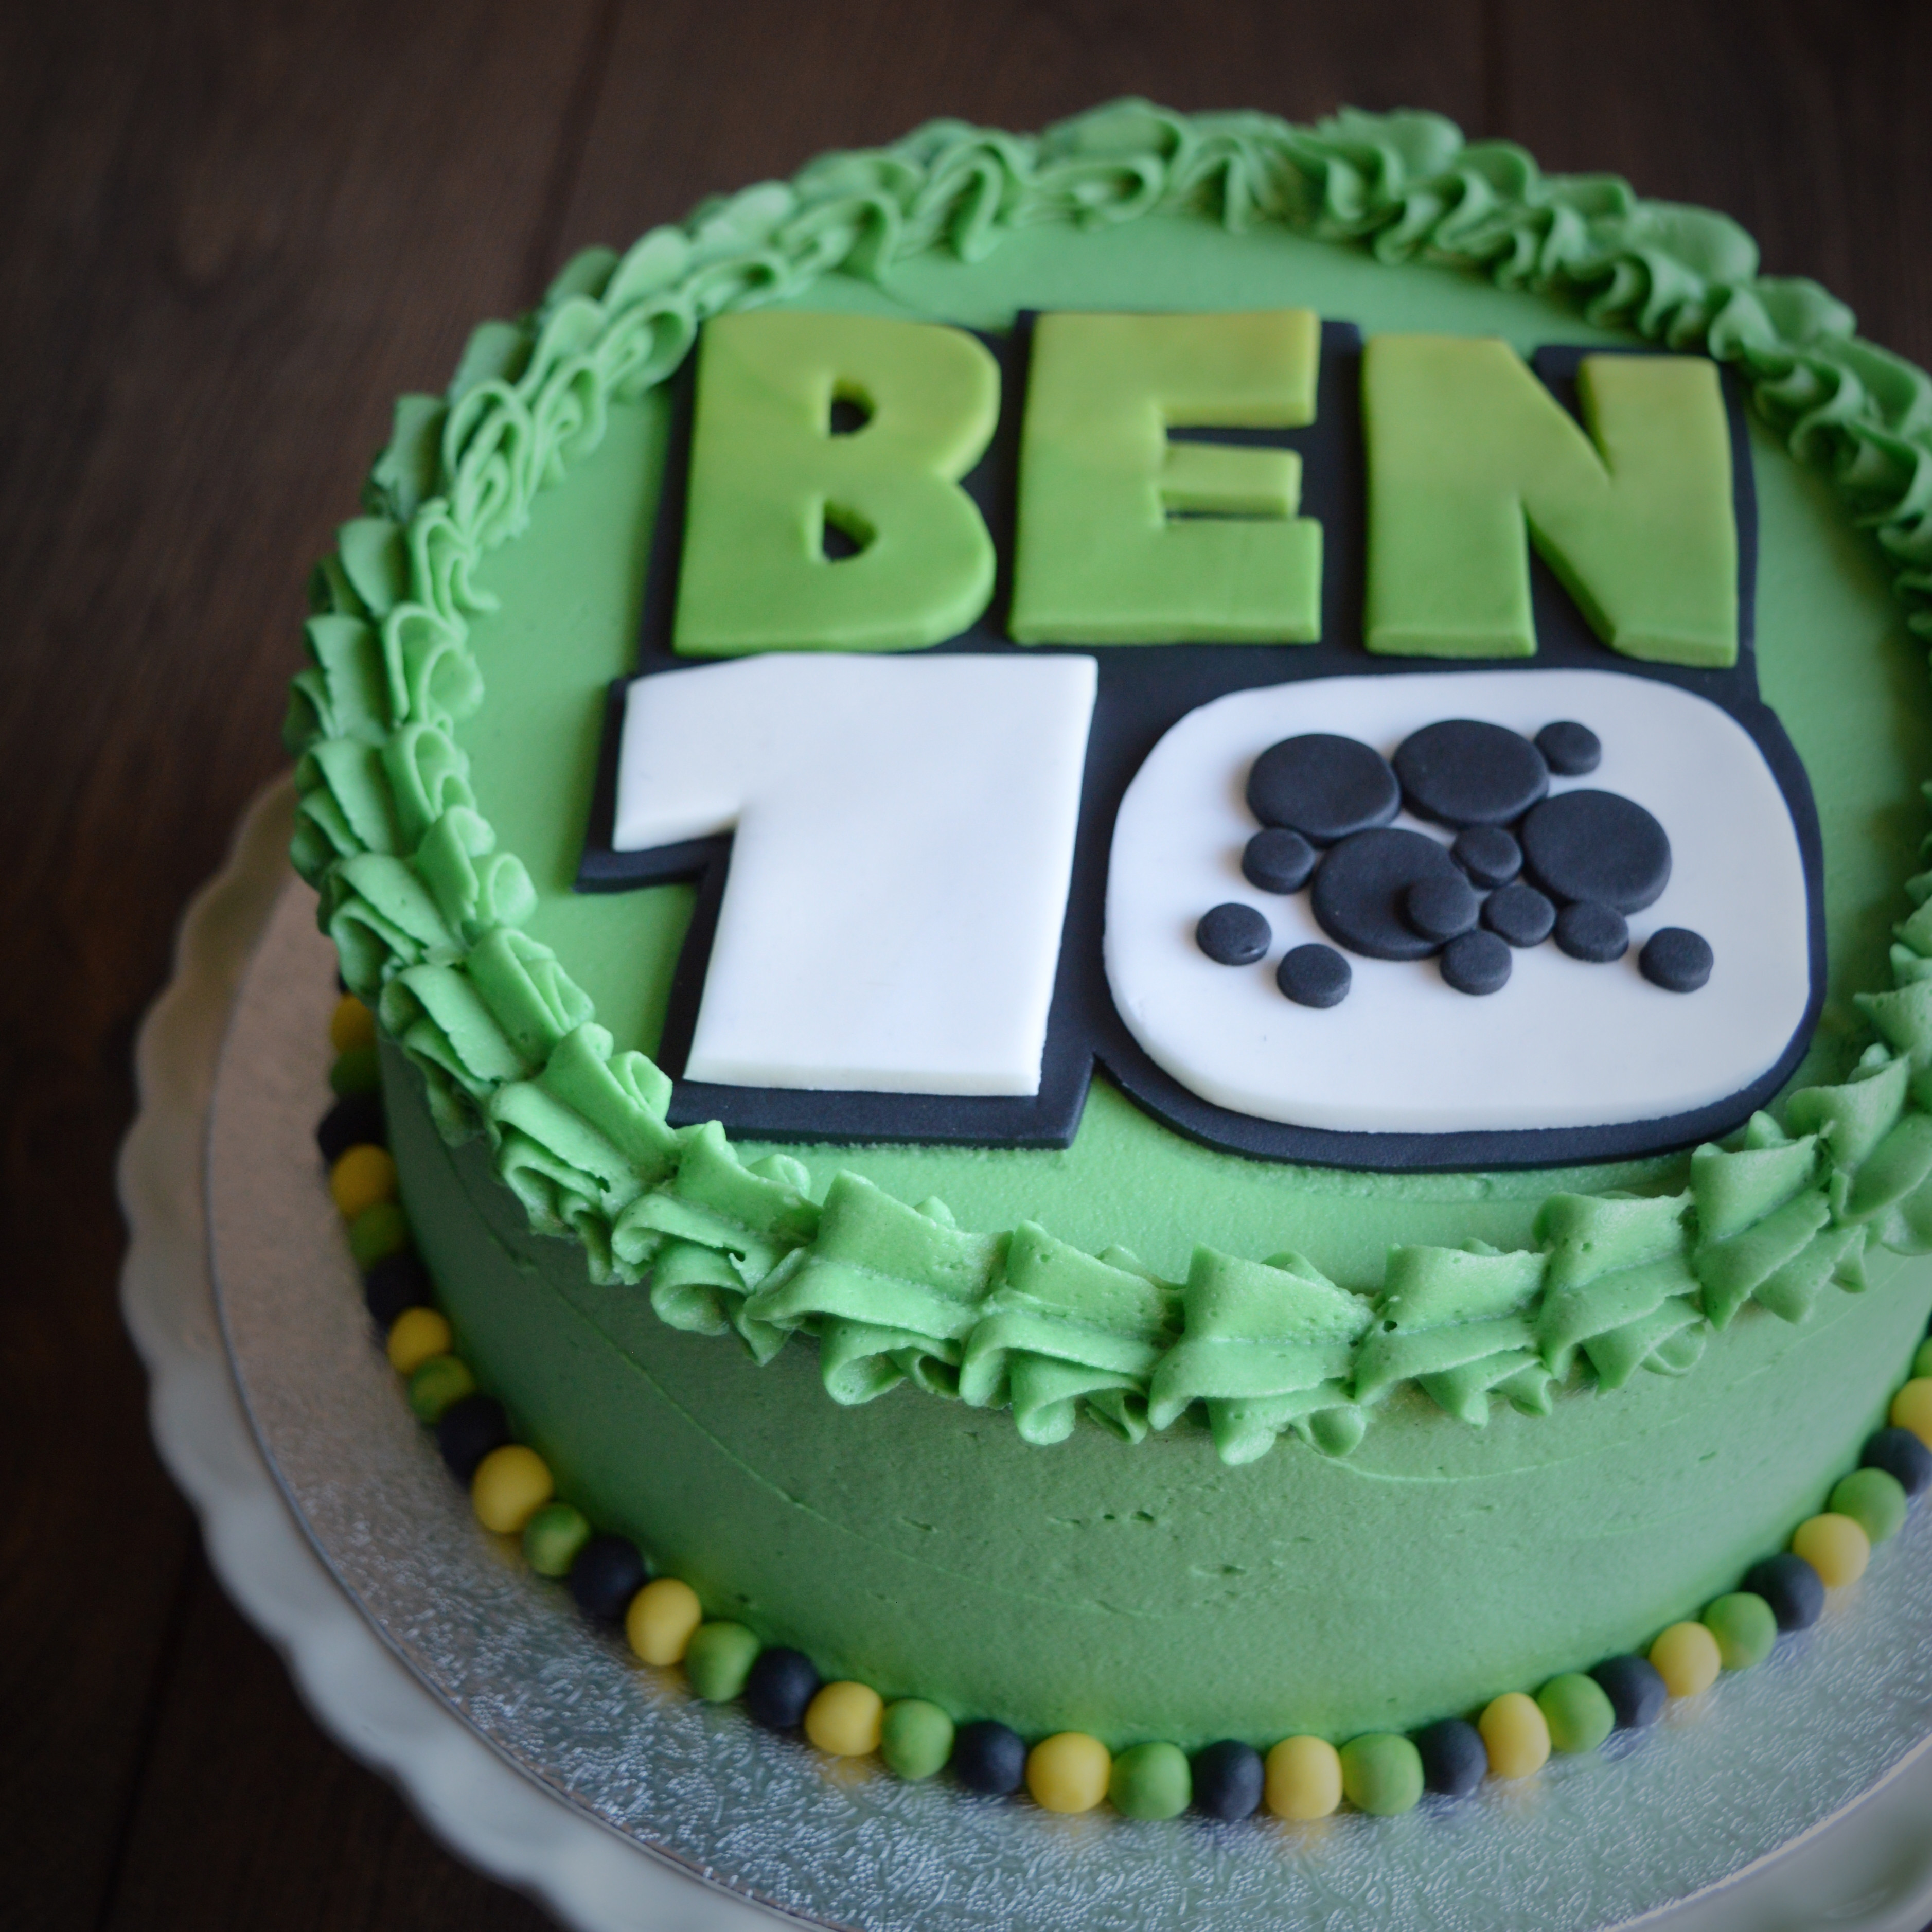 Swell Ben 10 Birthday Cake Top Birthday Cake Pictures Photos Images Personalised Birthday Cards Paralily Jamesorg